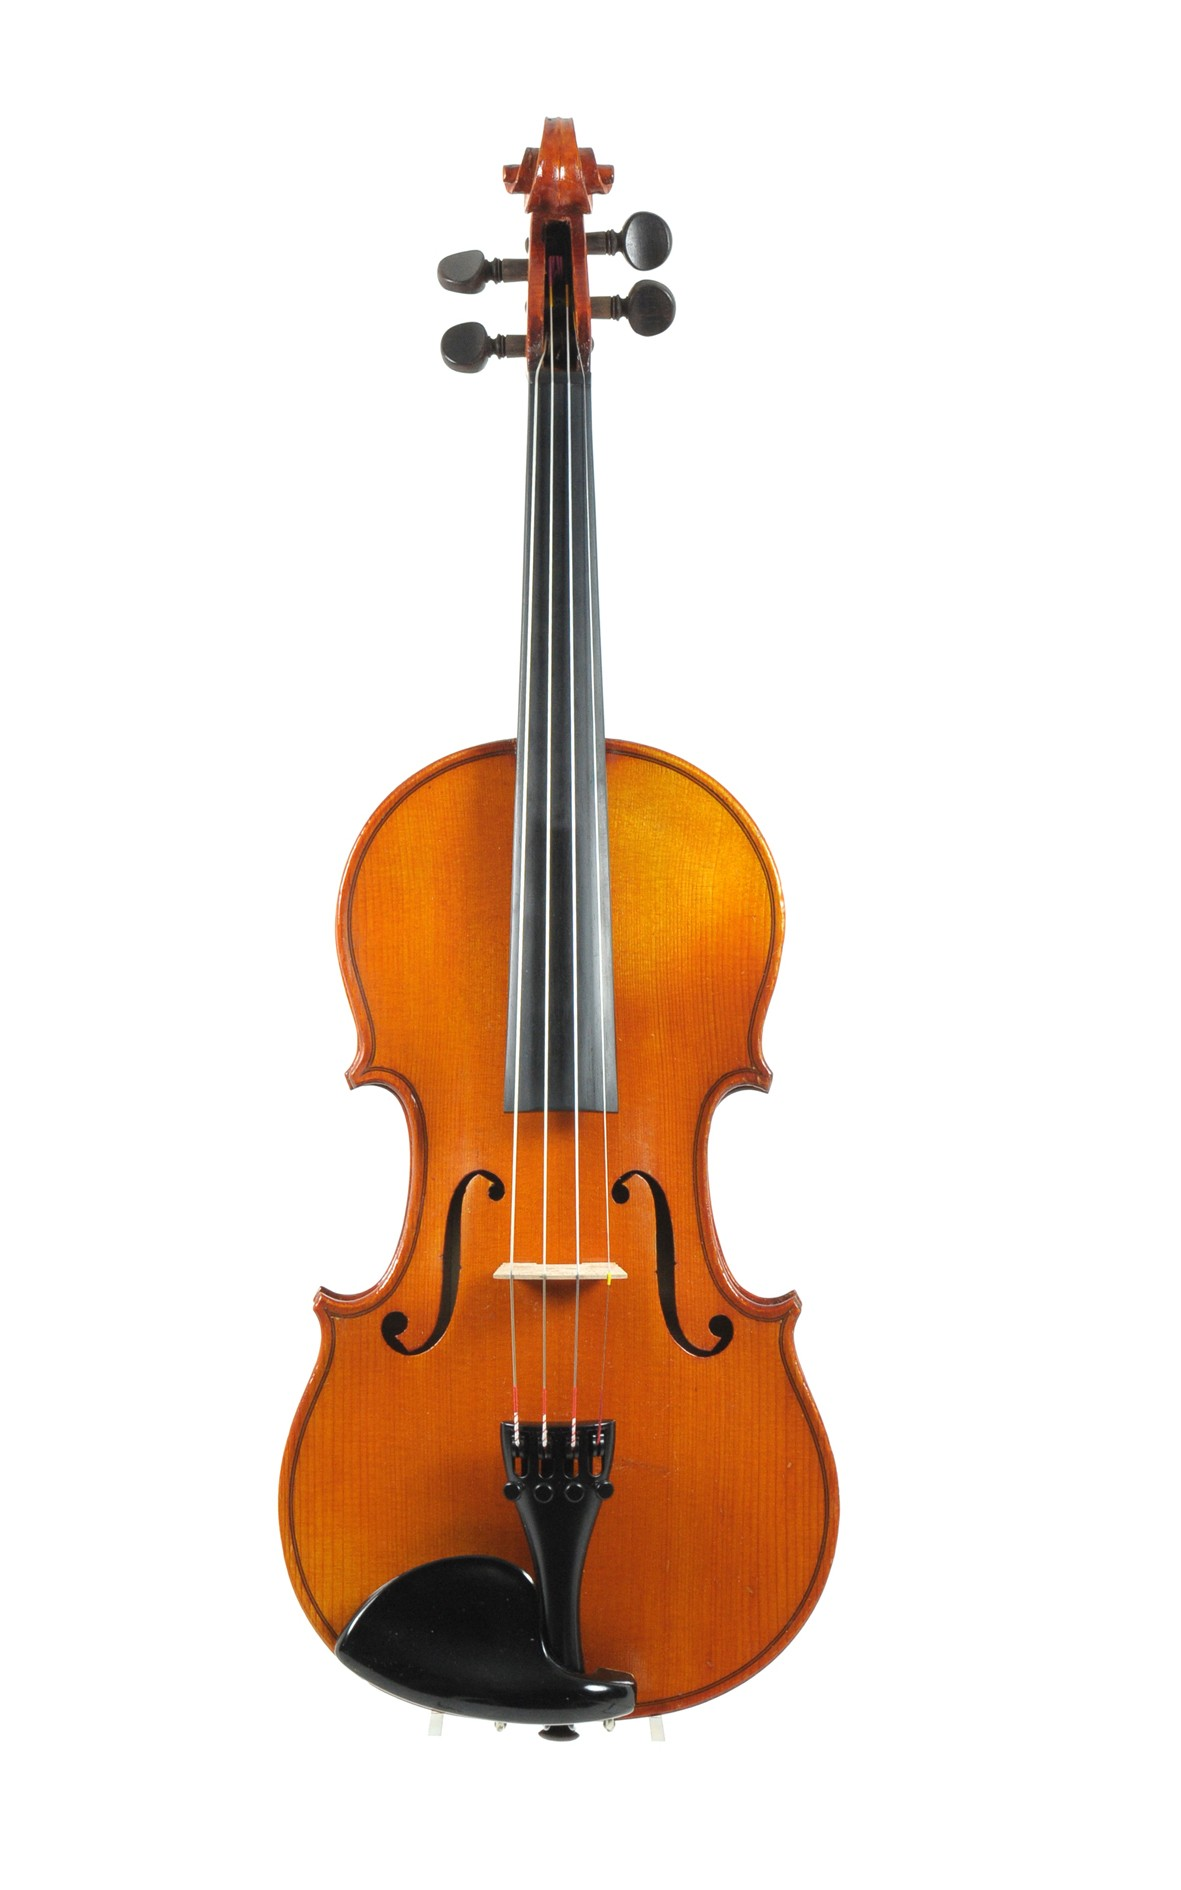 3/4 violin after Guarneri, from Mirecourt